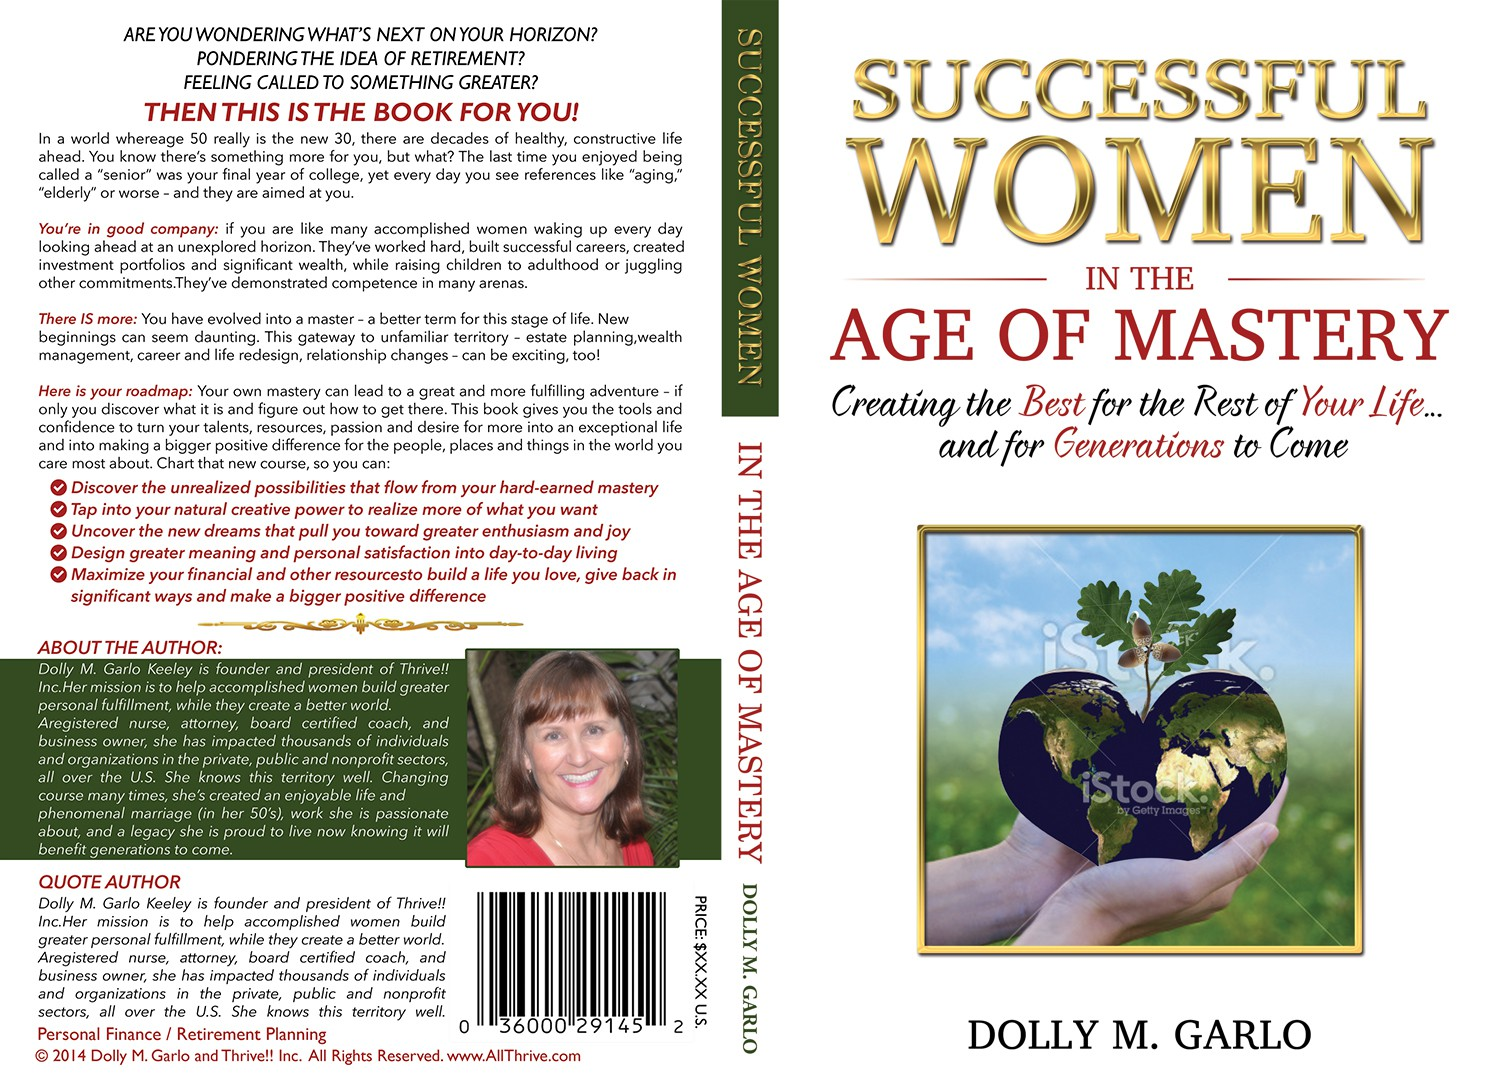 Book Cover: Successful Women in the Age of Mastery